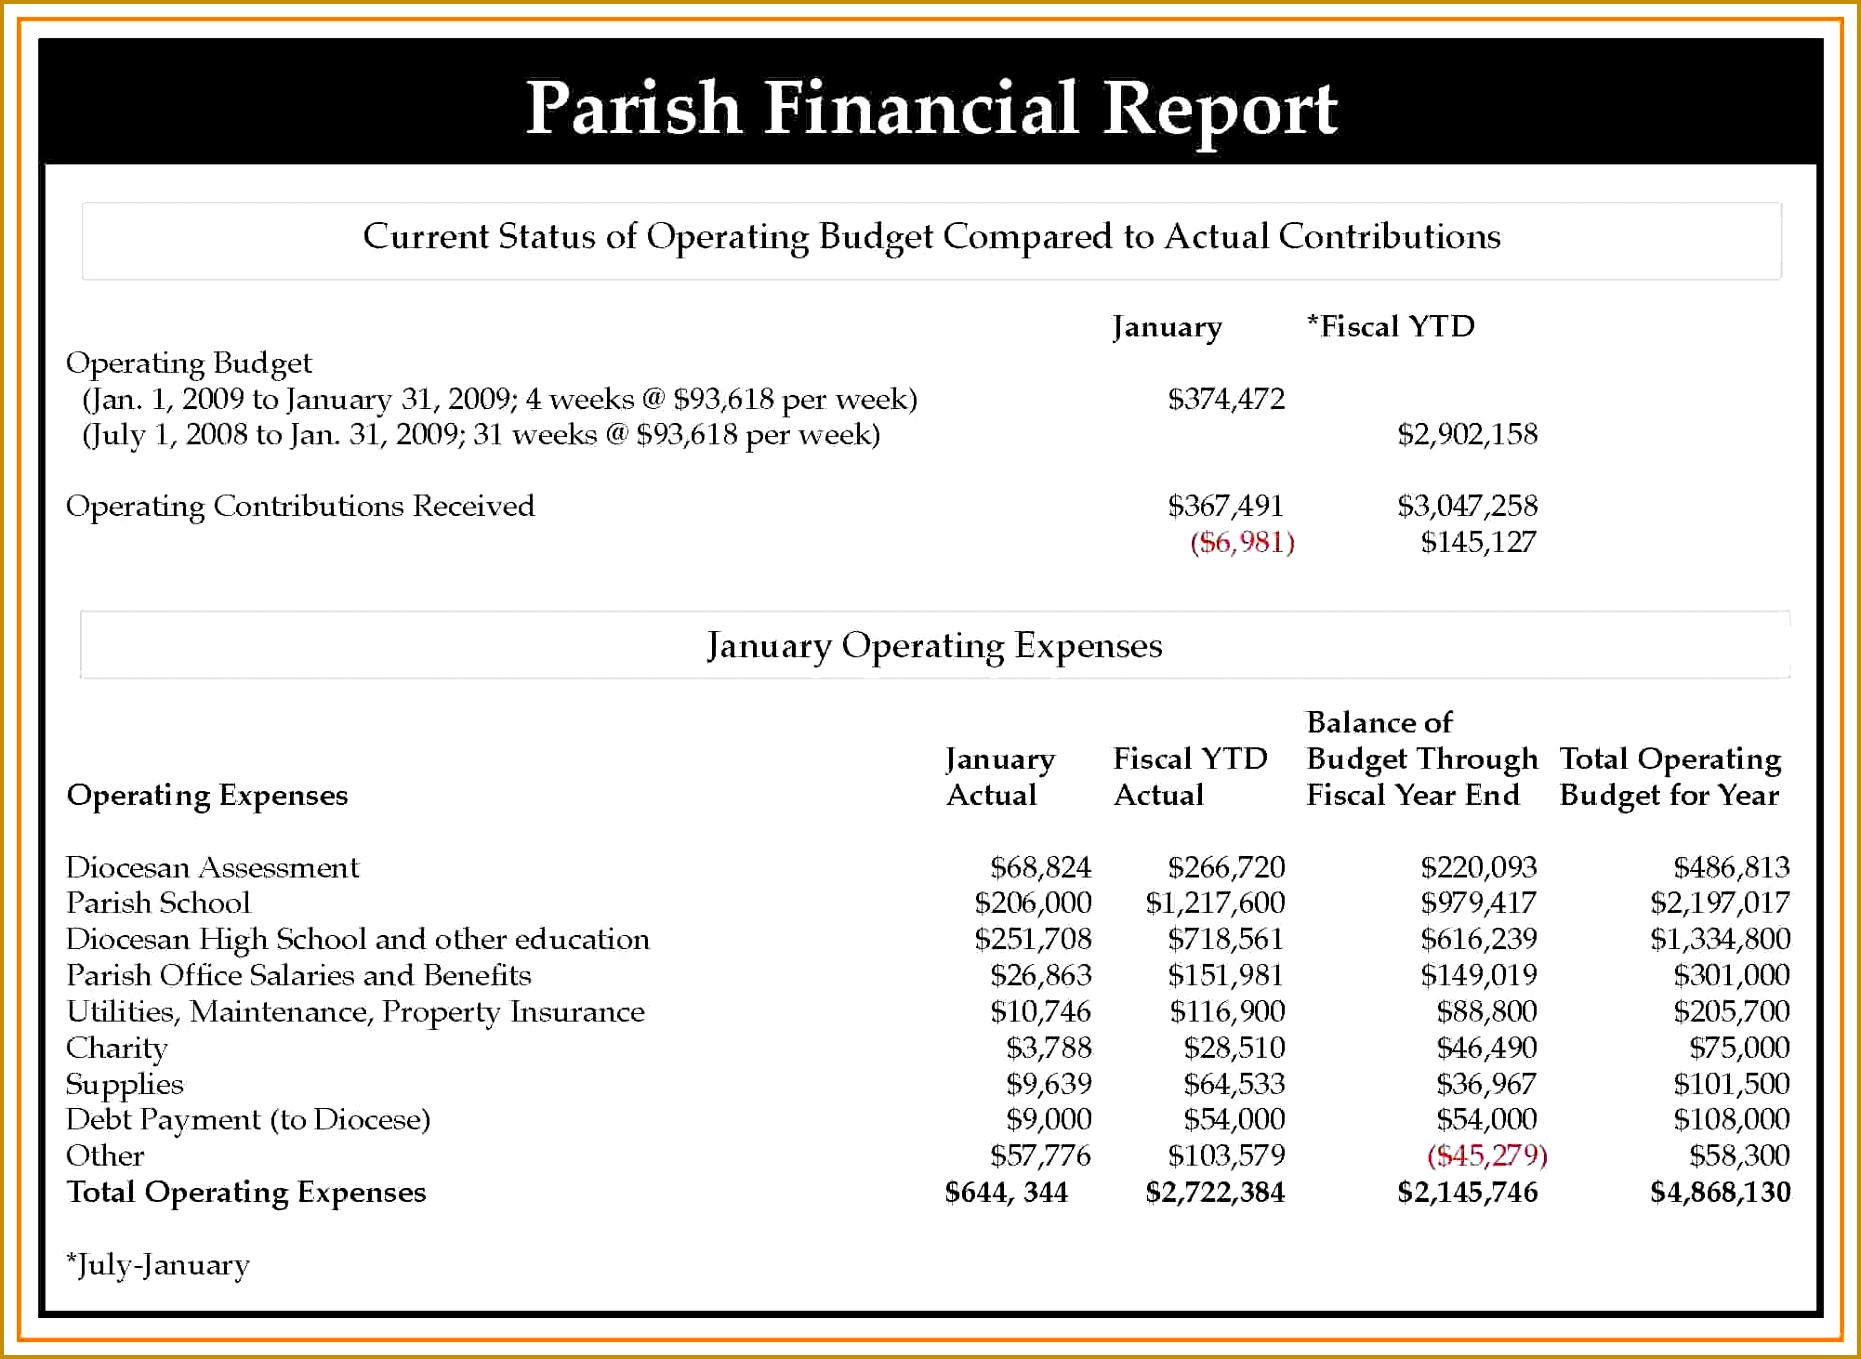 9 The Reports And Financial Statements Statement Form Monthly Eric Mcardle Reports a part of under Best s Church 18611359